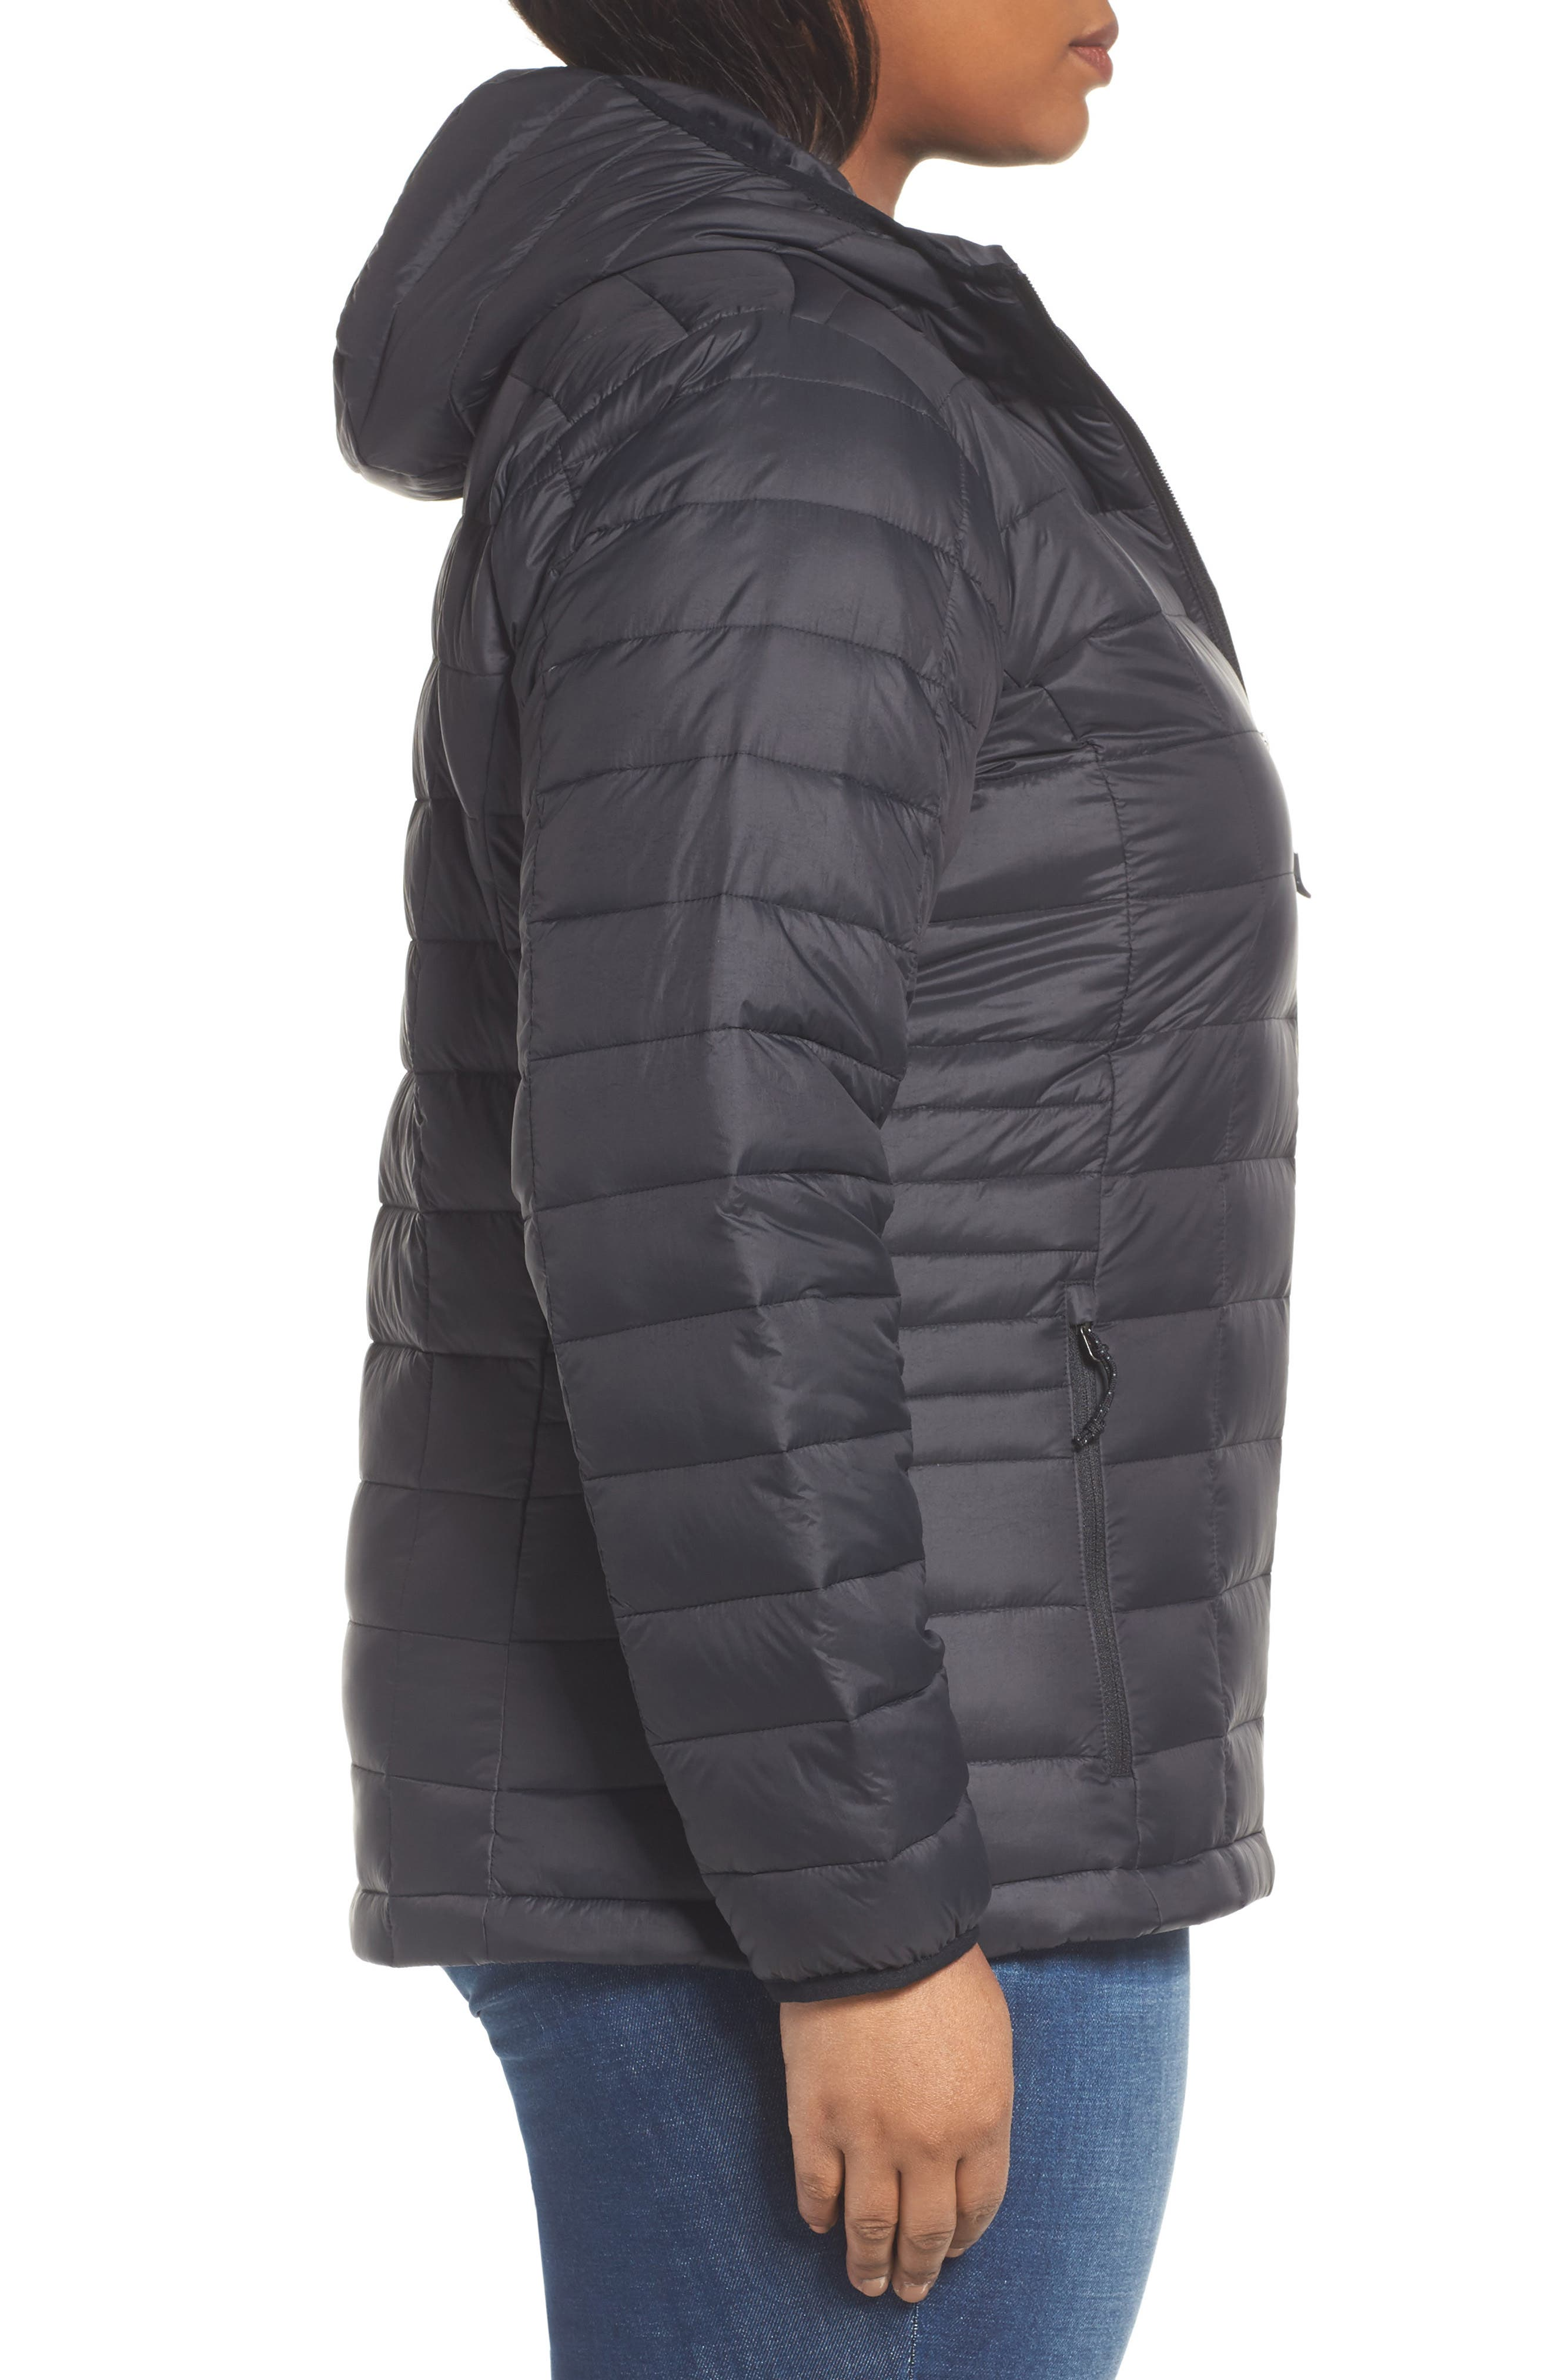 Voodoo Falls 590 Turbodown<sup>™</sup> Down Jacket,                             Alternate thumbnail 3, color,                             010